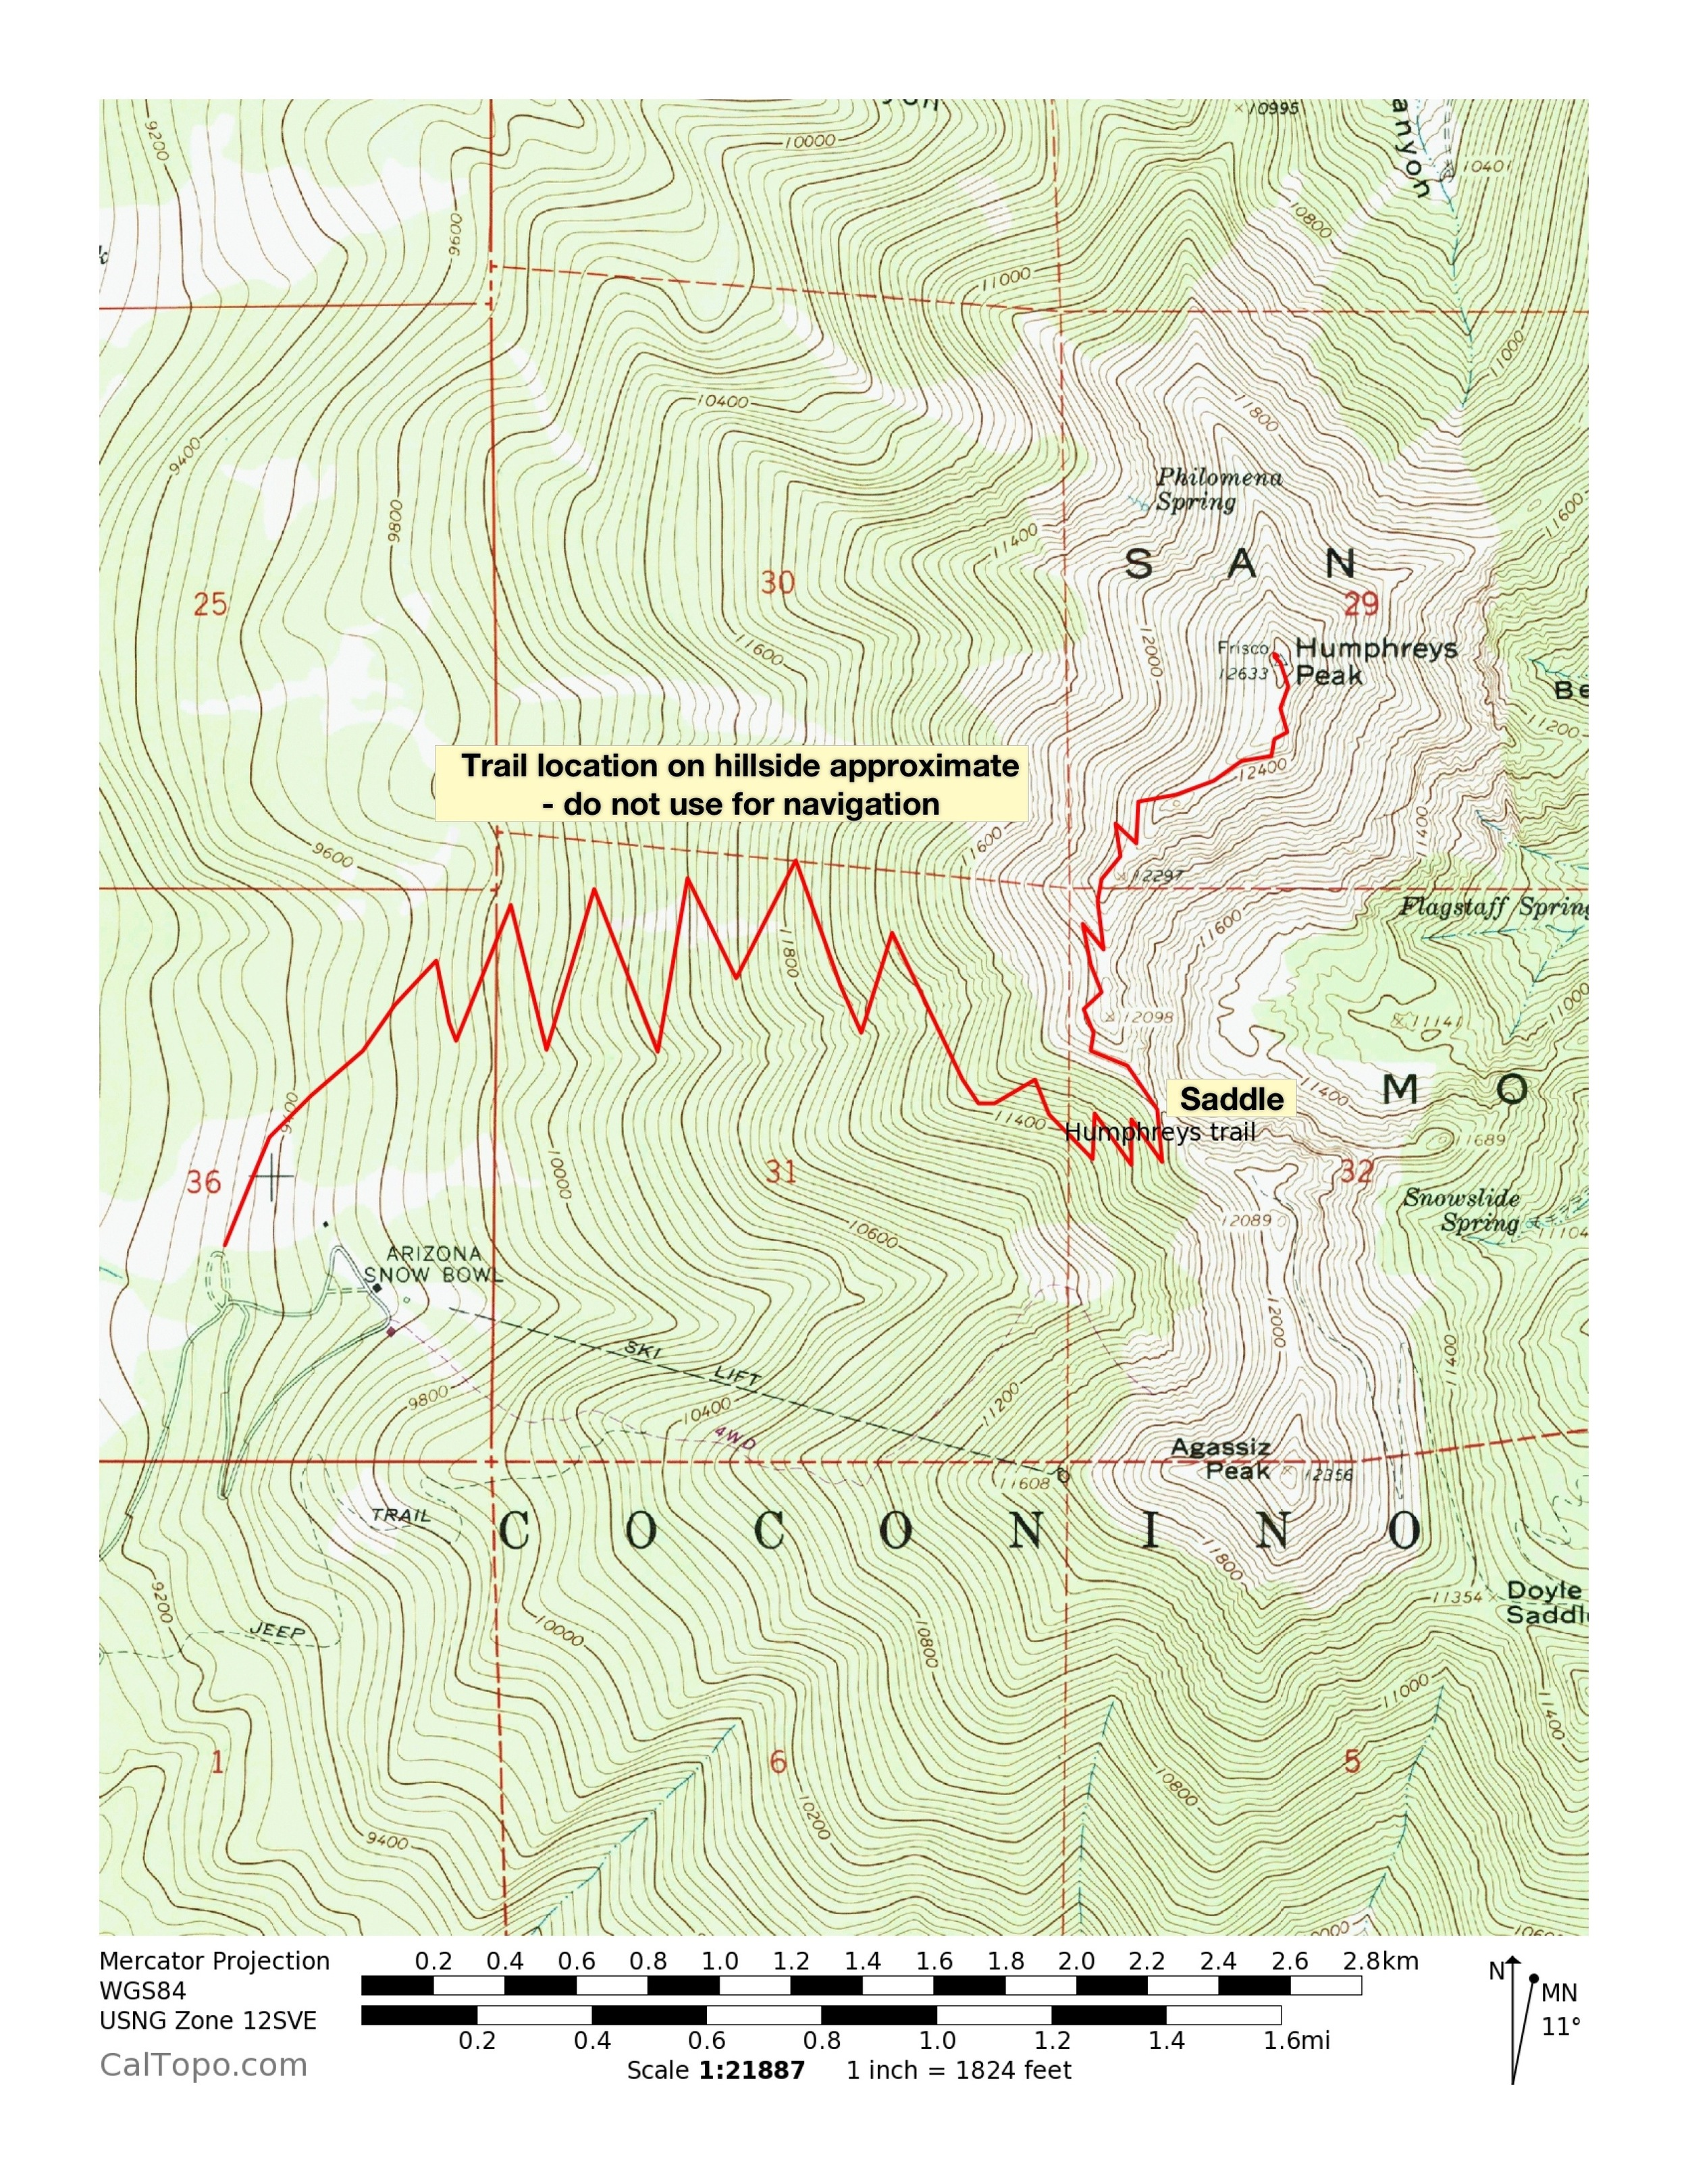 Map of the route up Humphreys Peak. Note that the trail locations are approximate only.